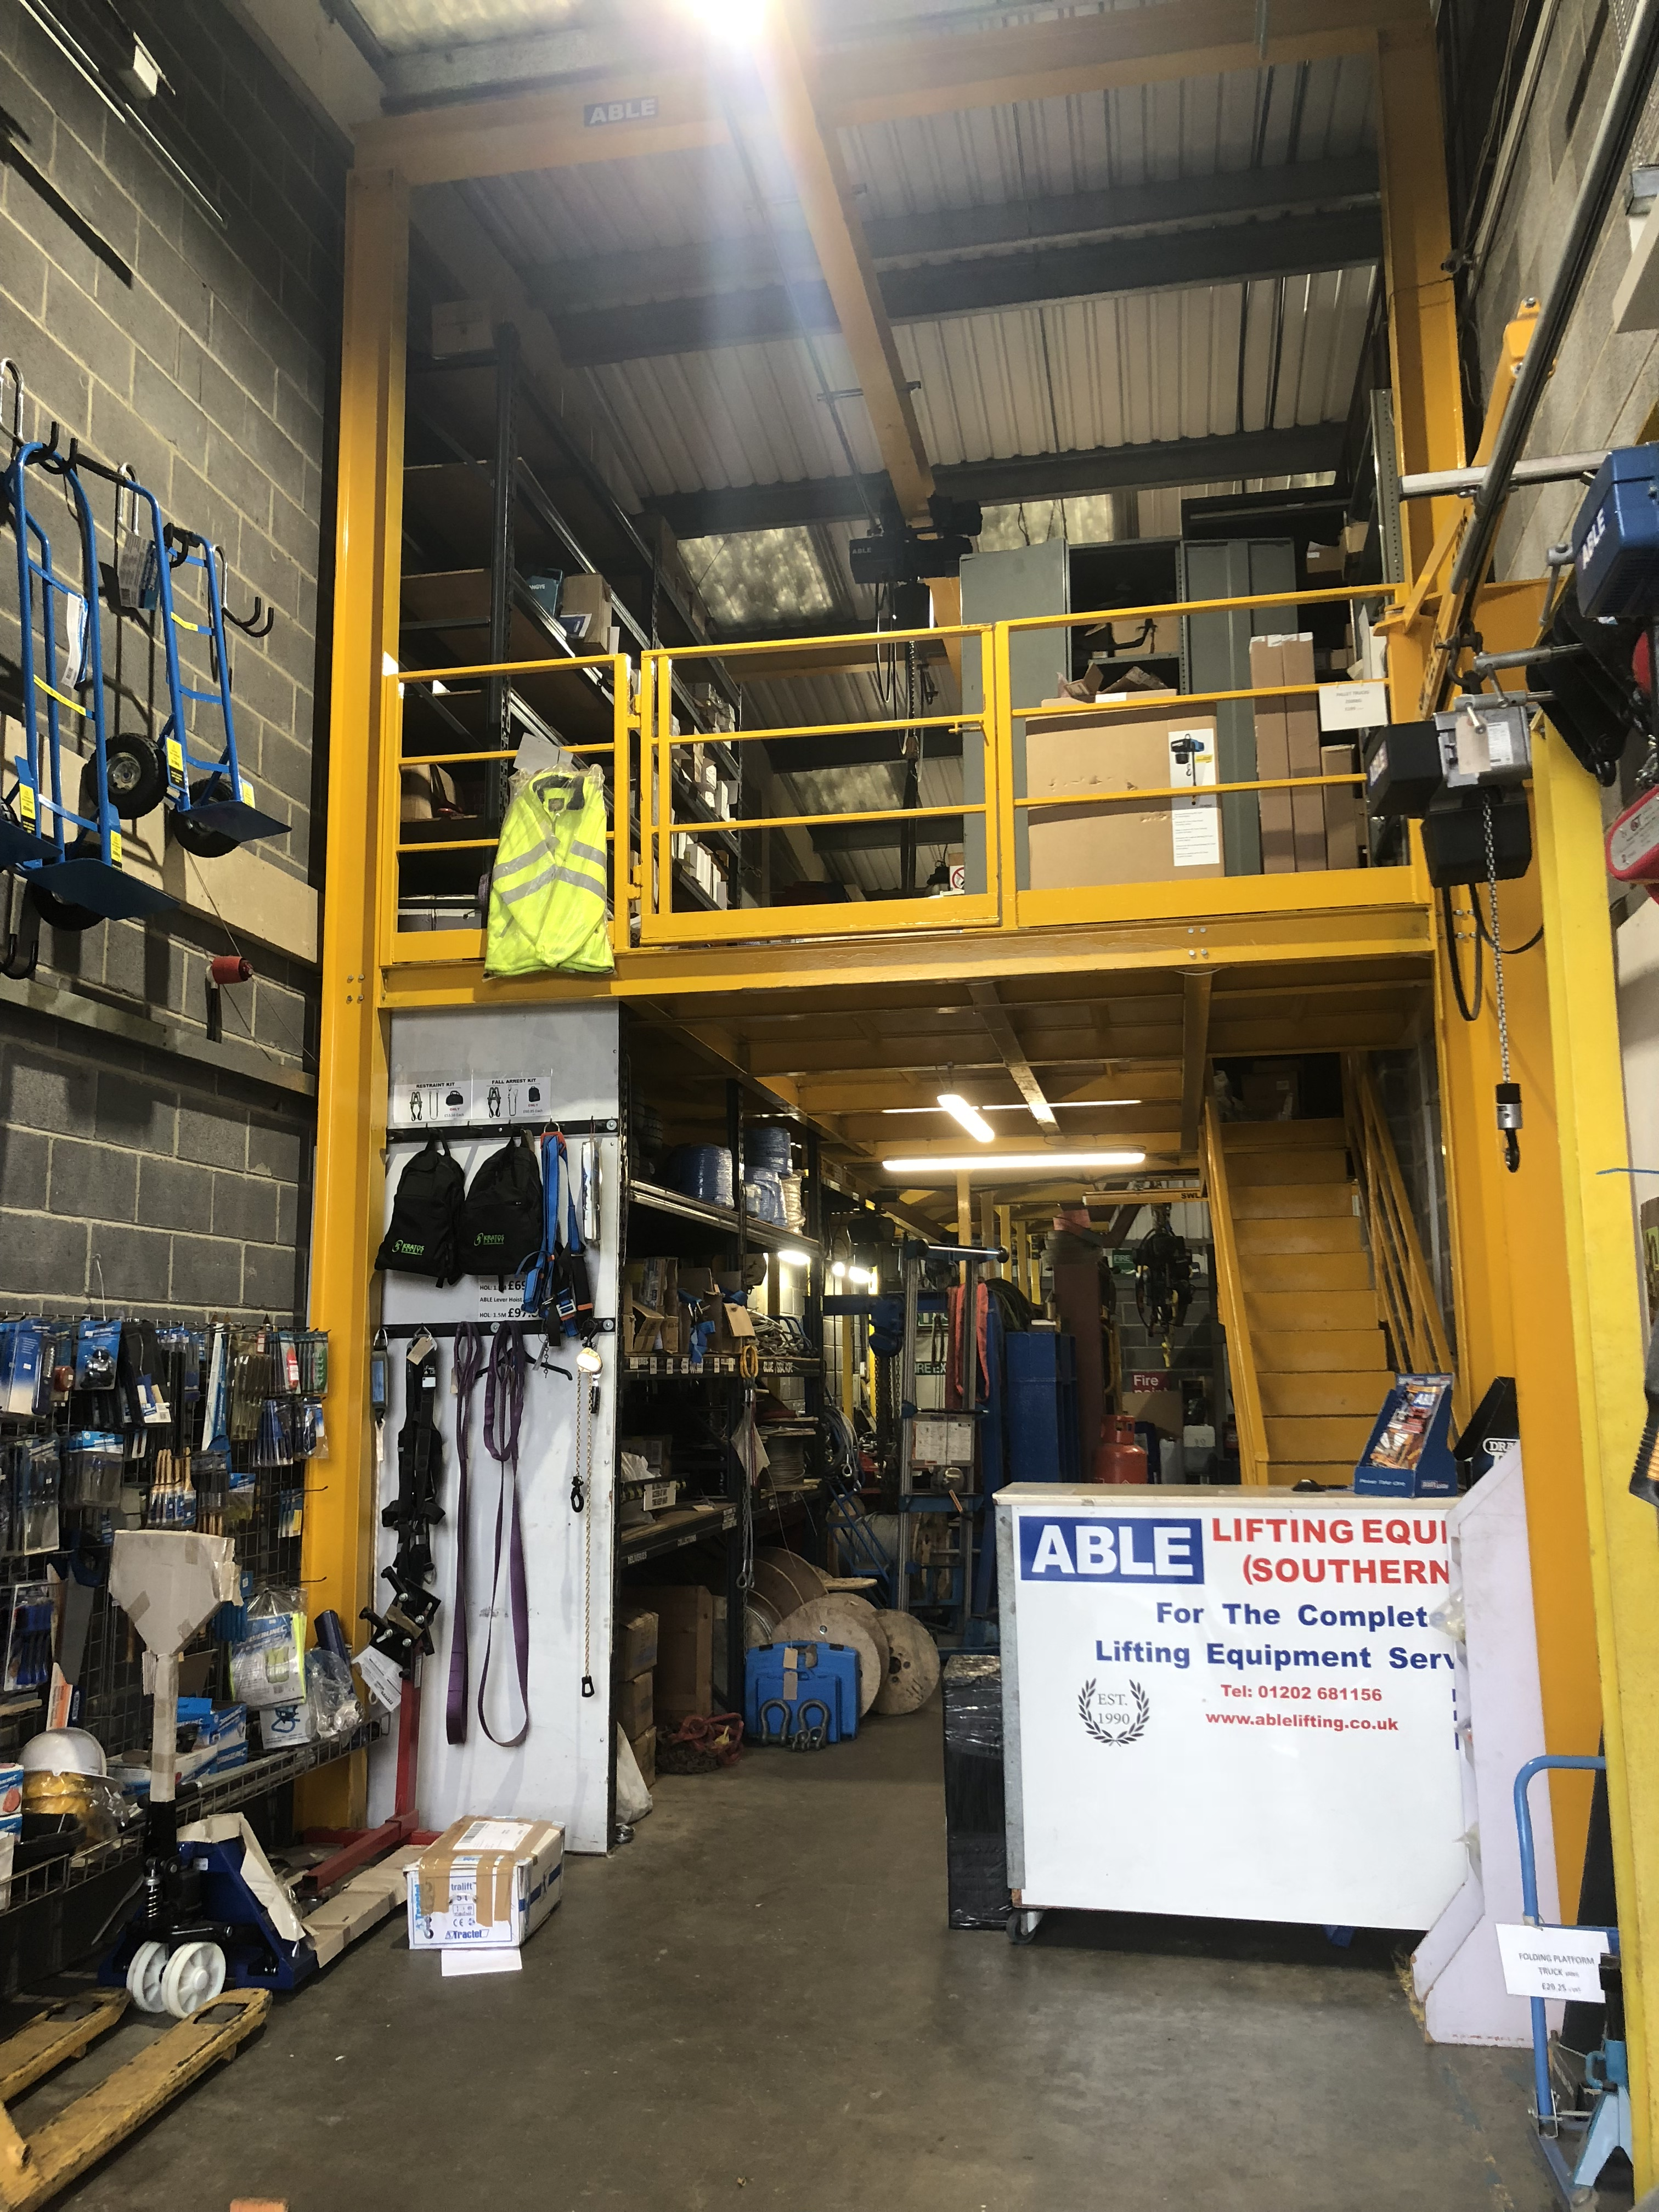 Gallery | Poole | Able Lifting Equipment (Southern) Ltd